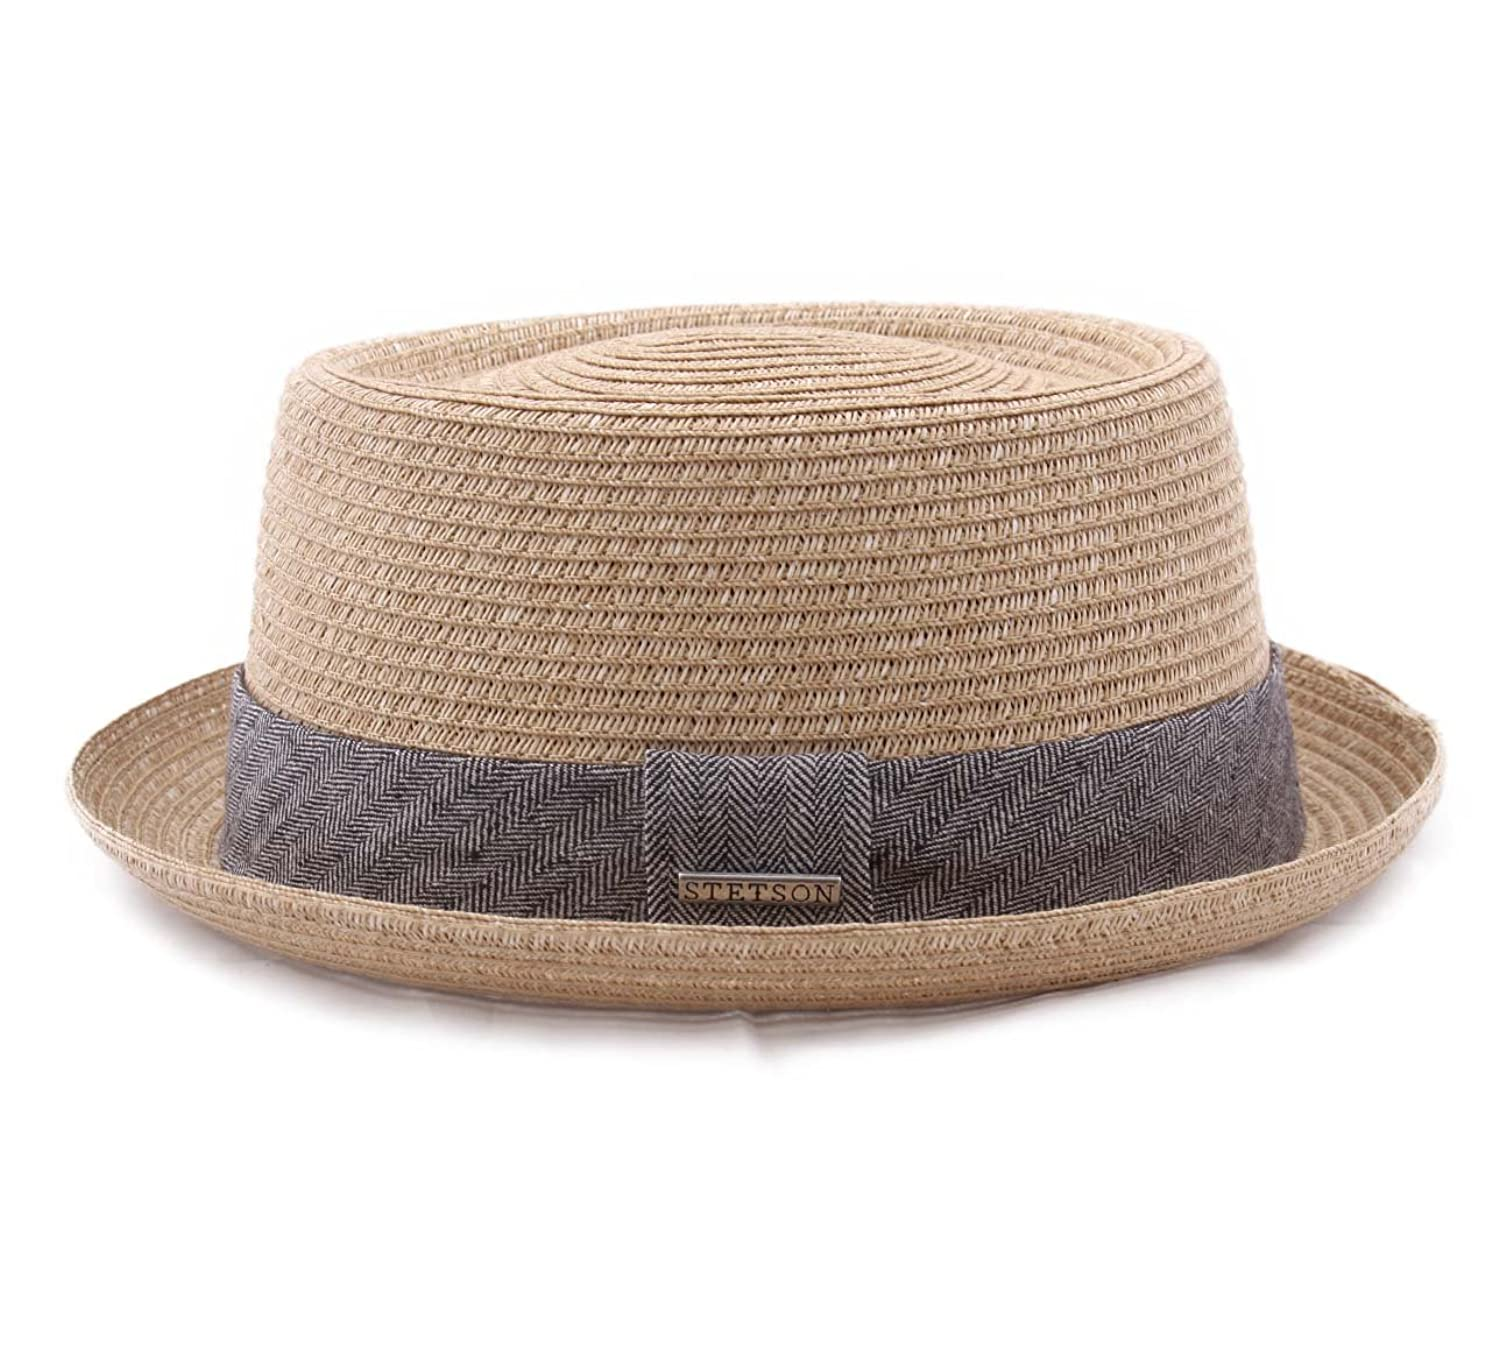 Stetson Hats Robstown Panama-Style Pork Pie Trilby Natural